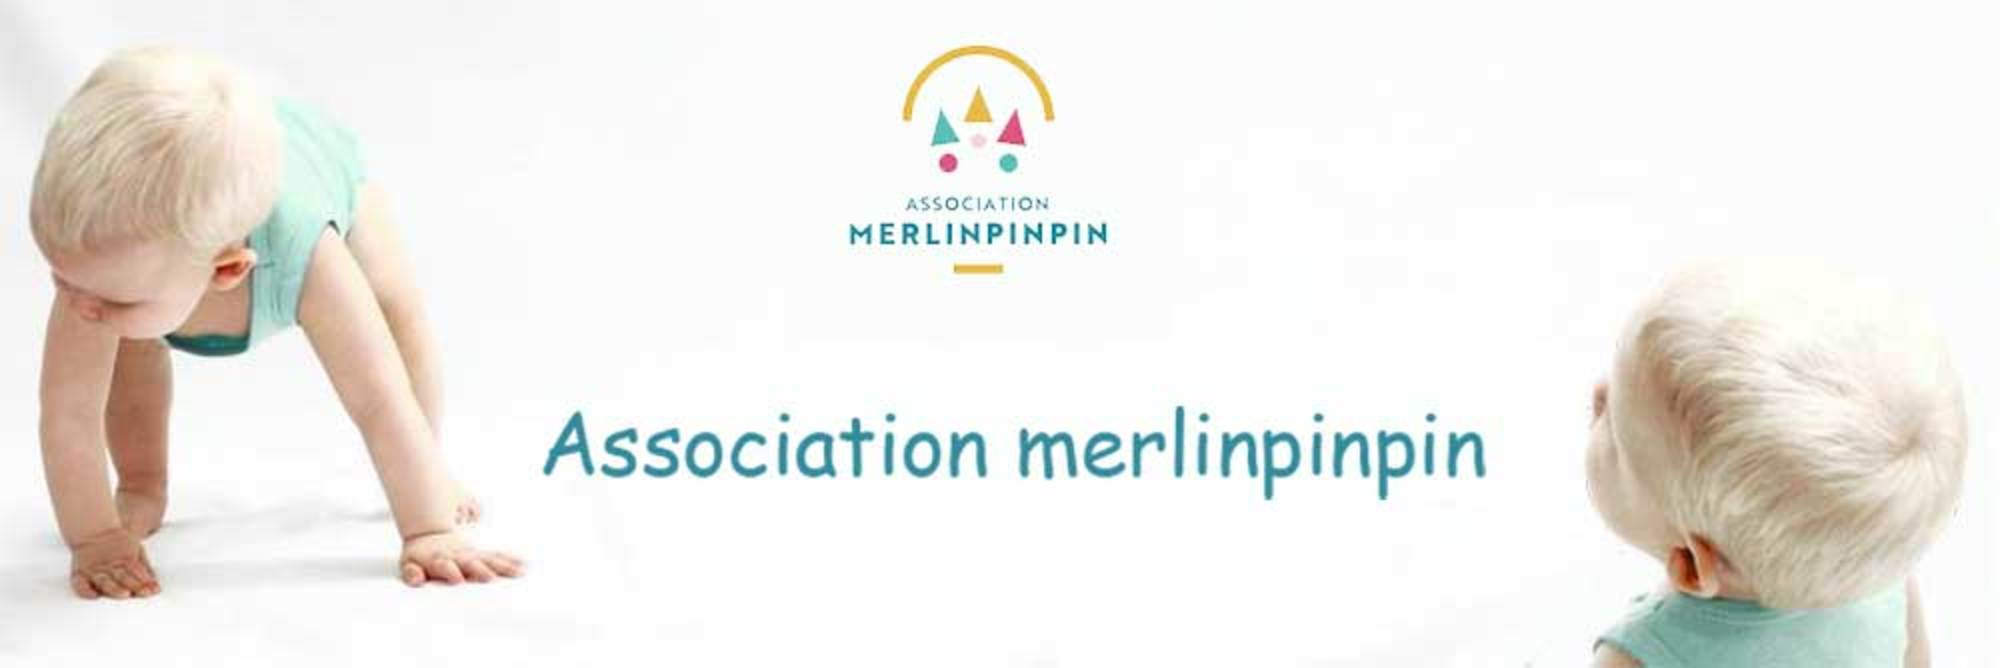 Association Merlinpinpin